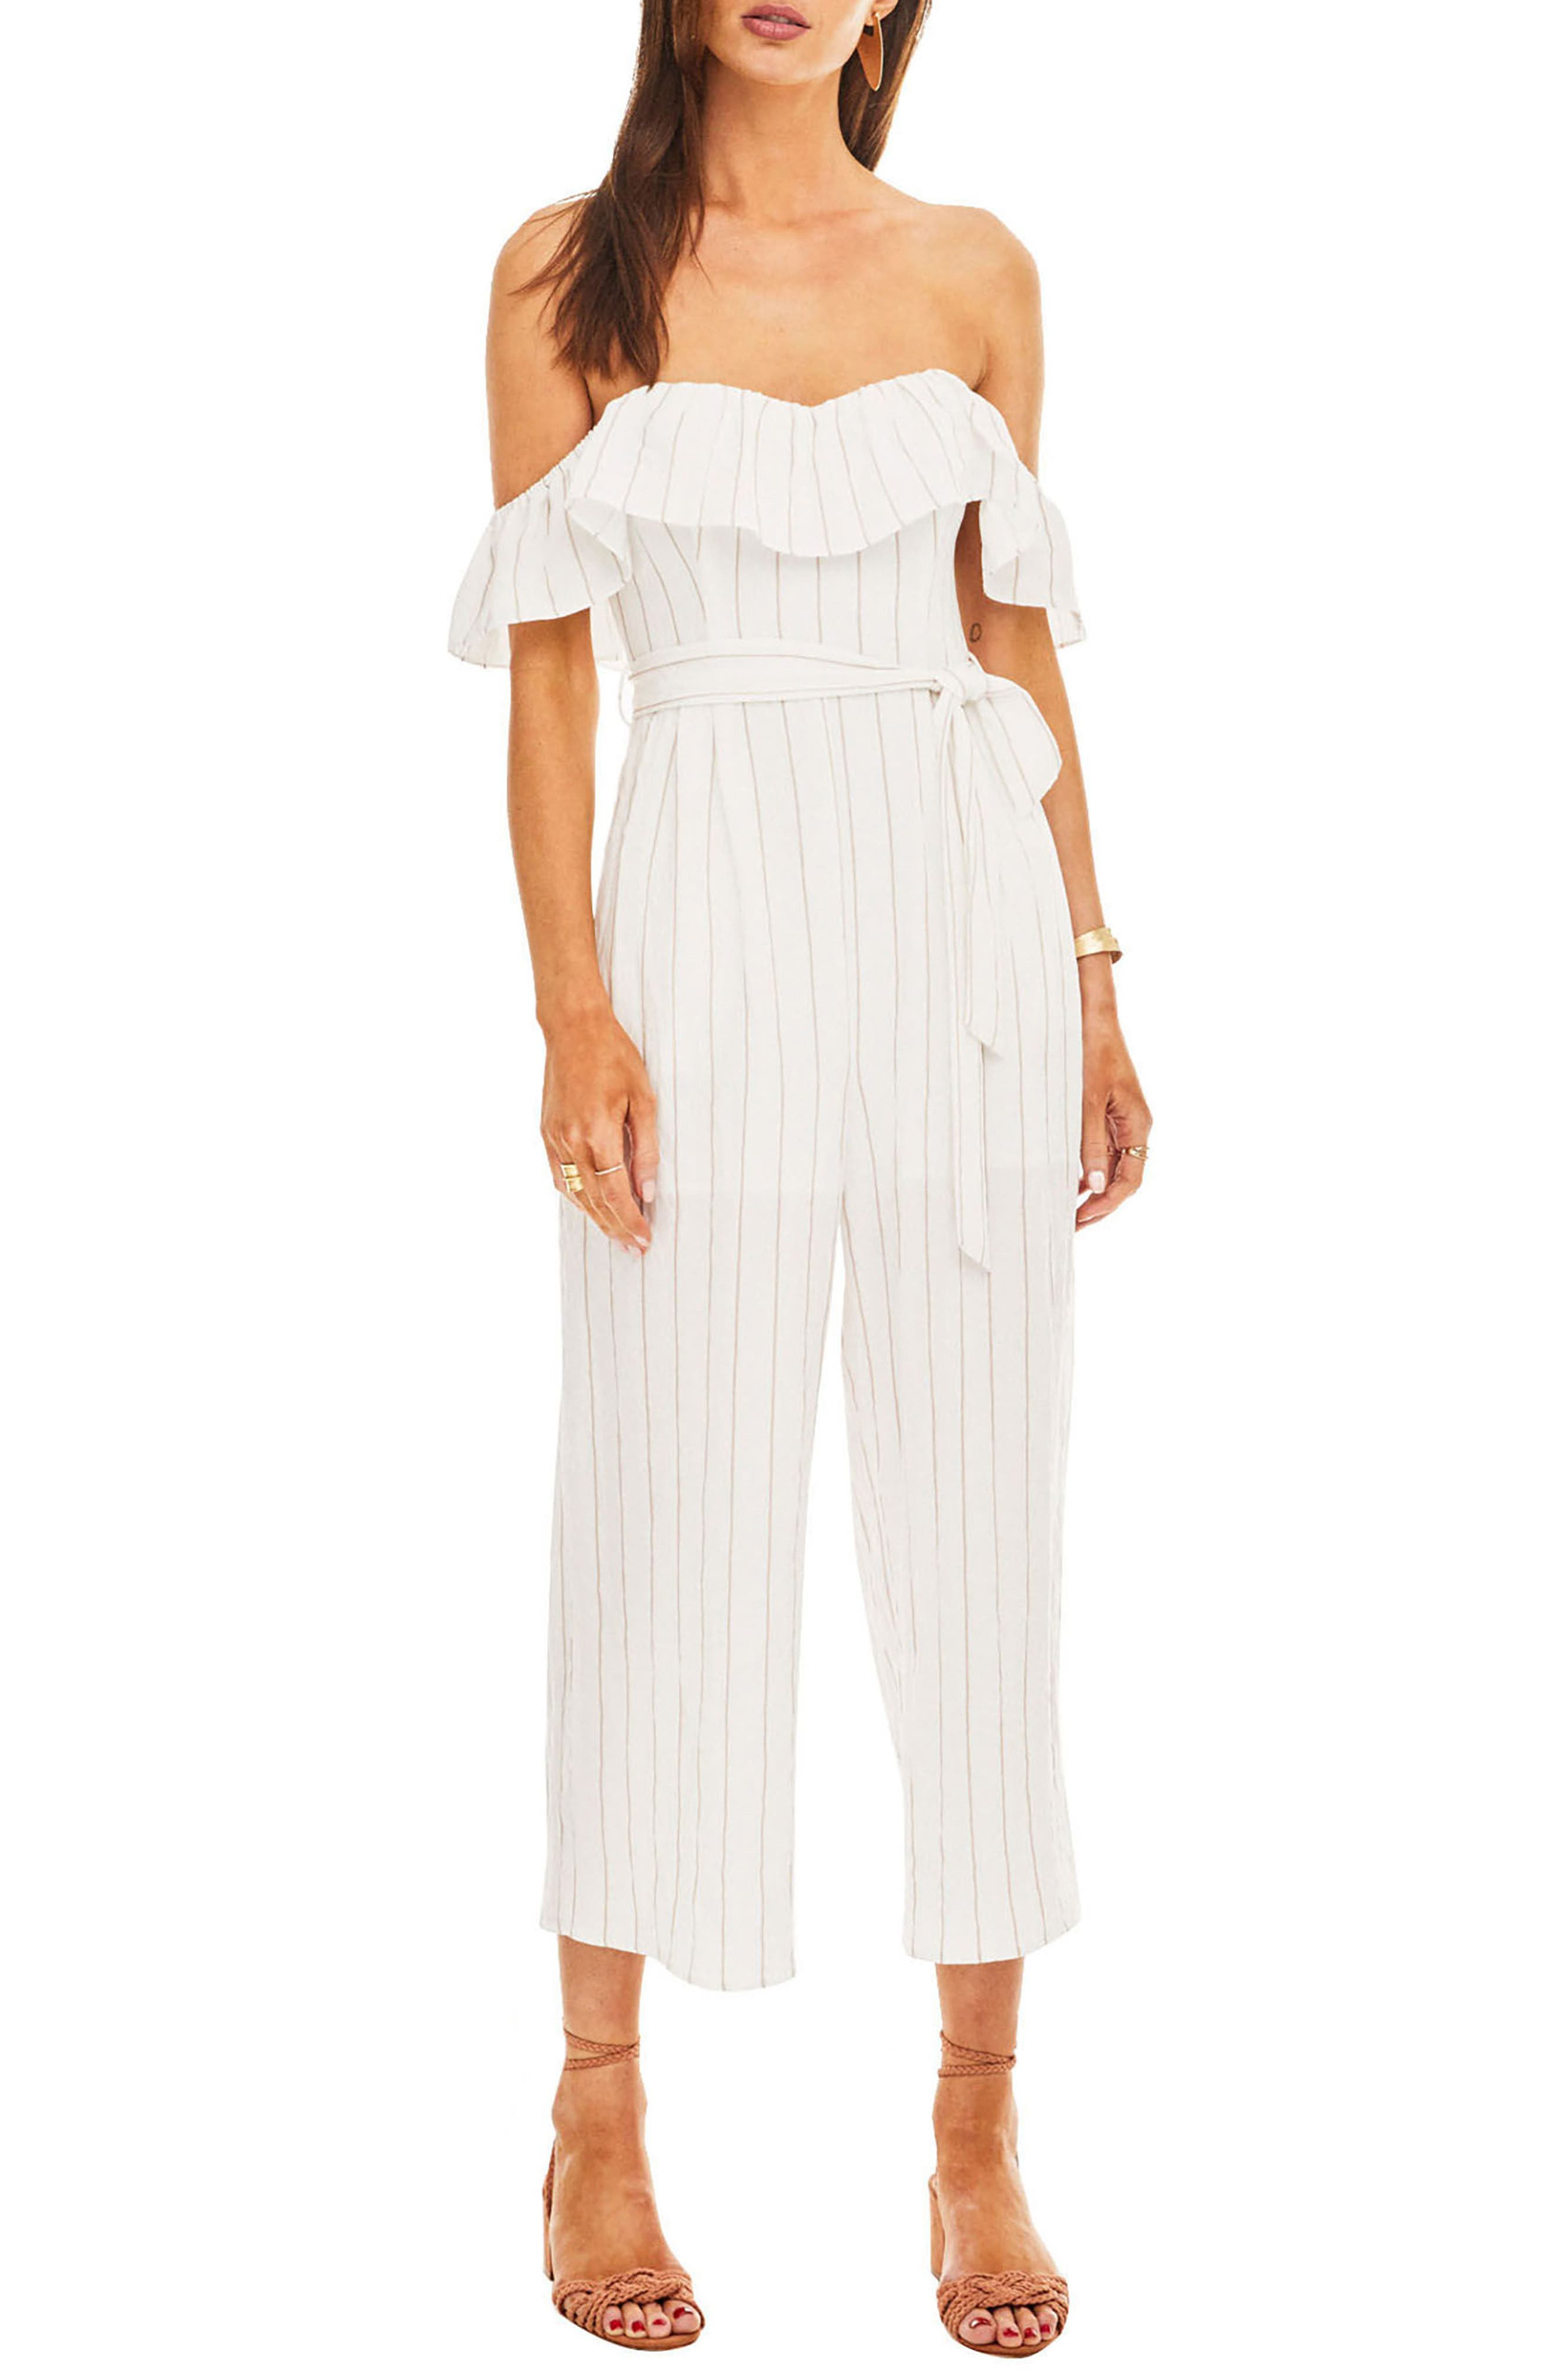 ASTR Keely Strapless Jumpsuit,                             Main thumbnail 1, color,                             White-Taupe Stripe